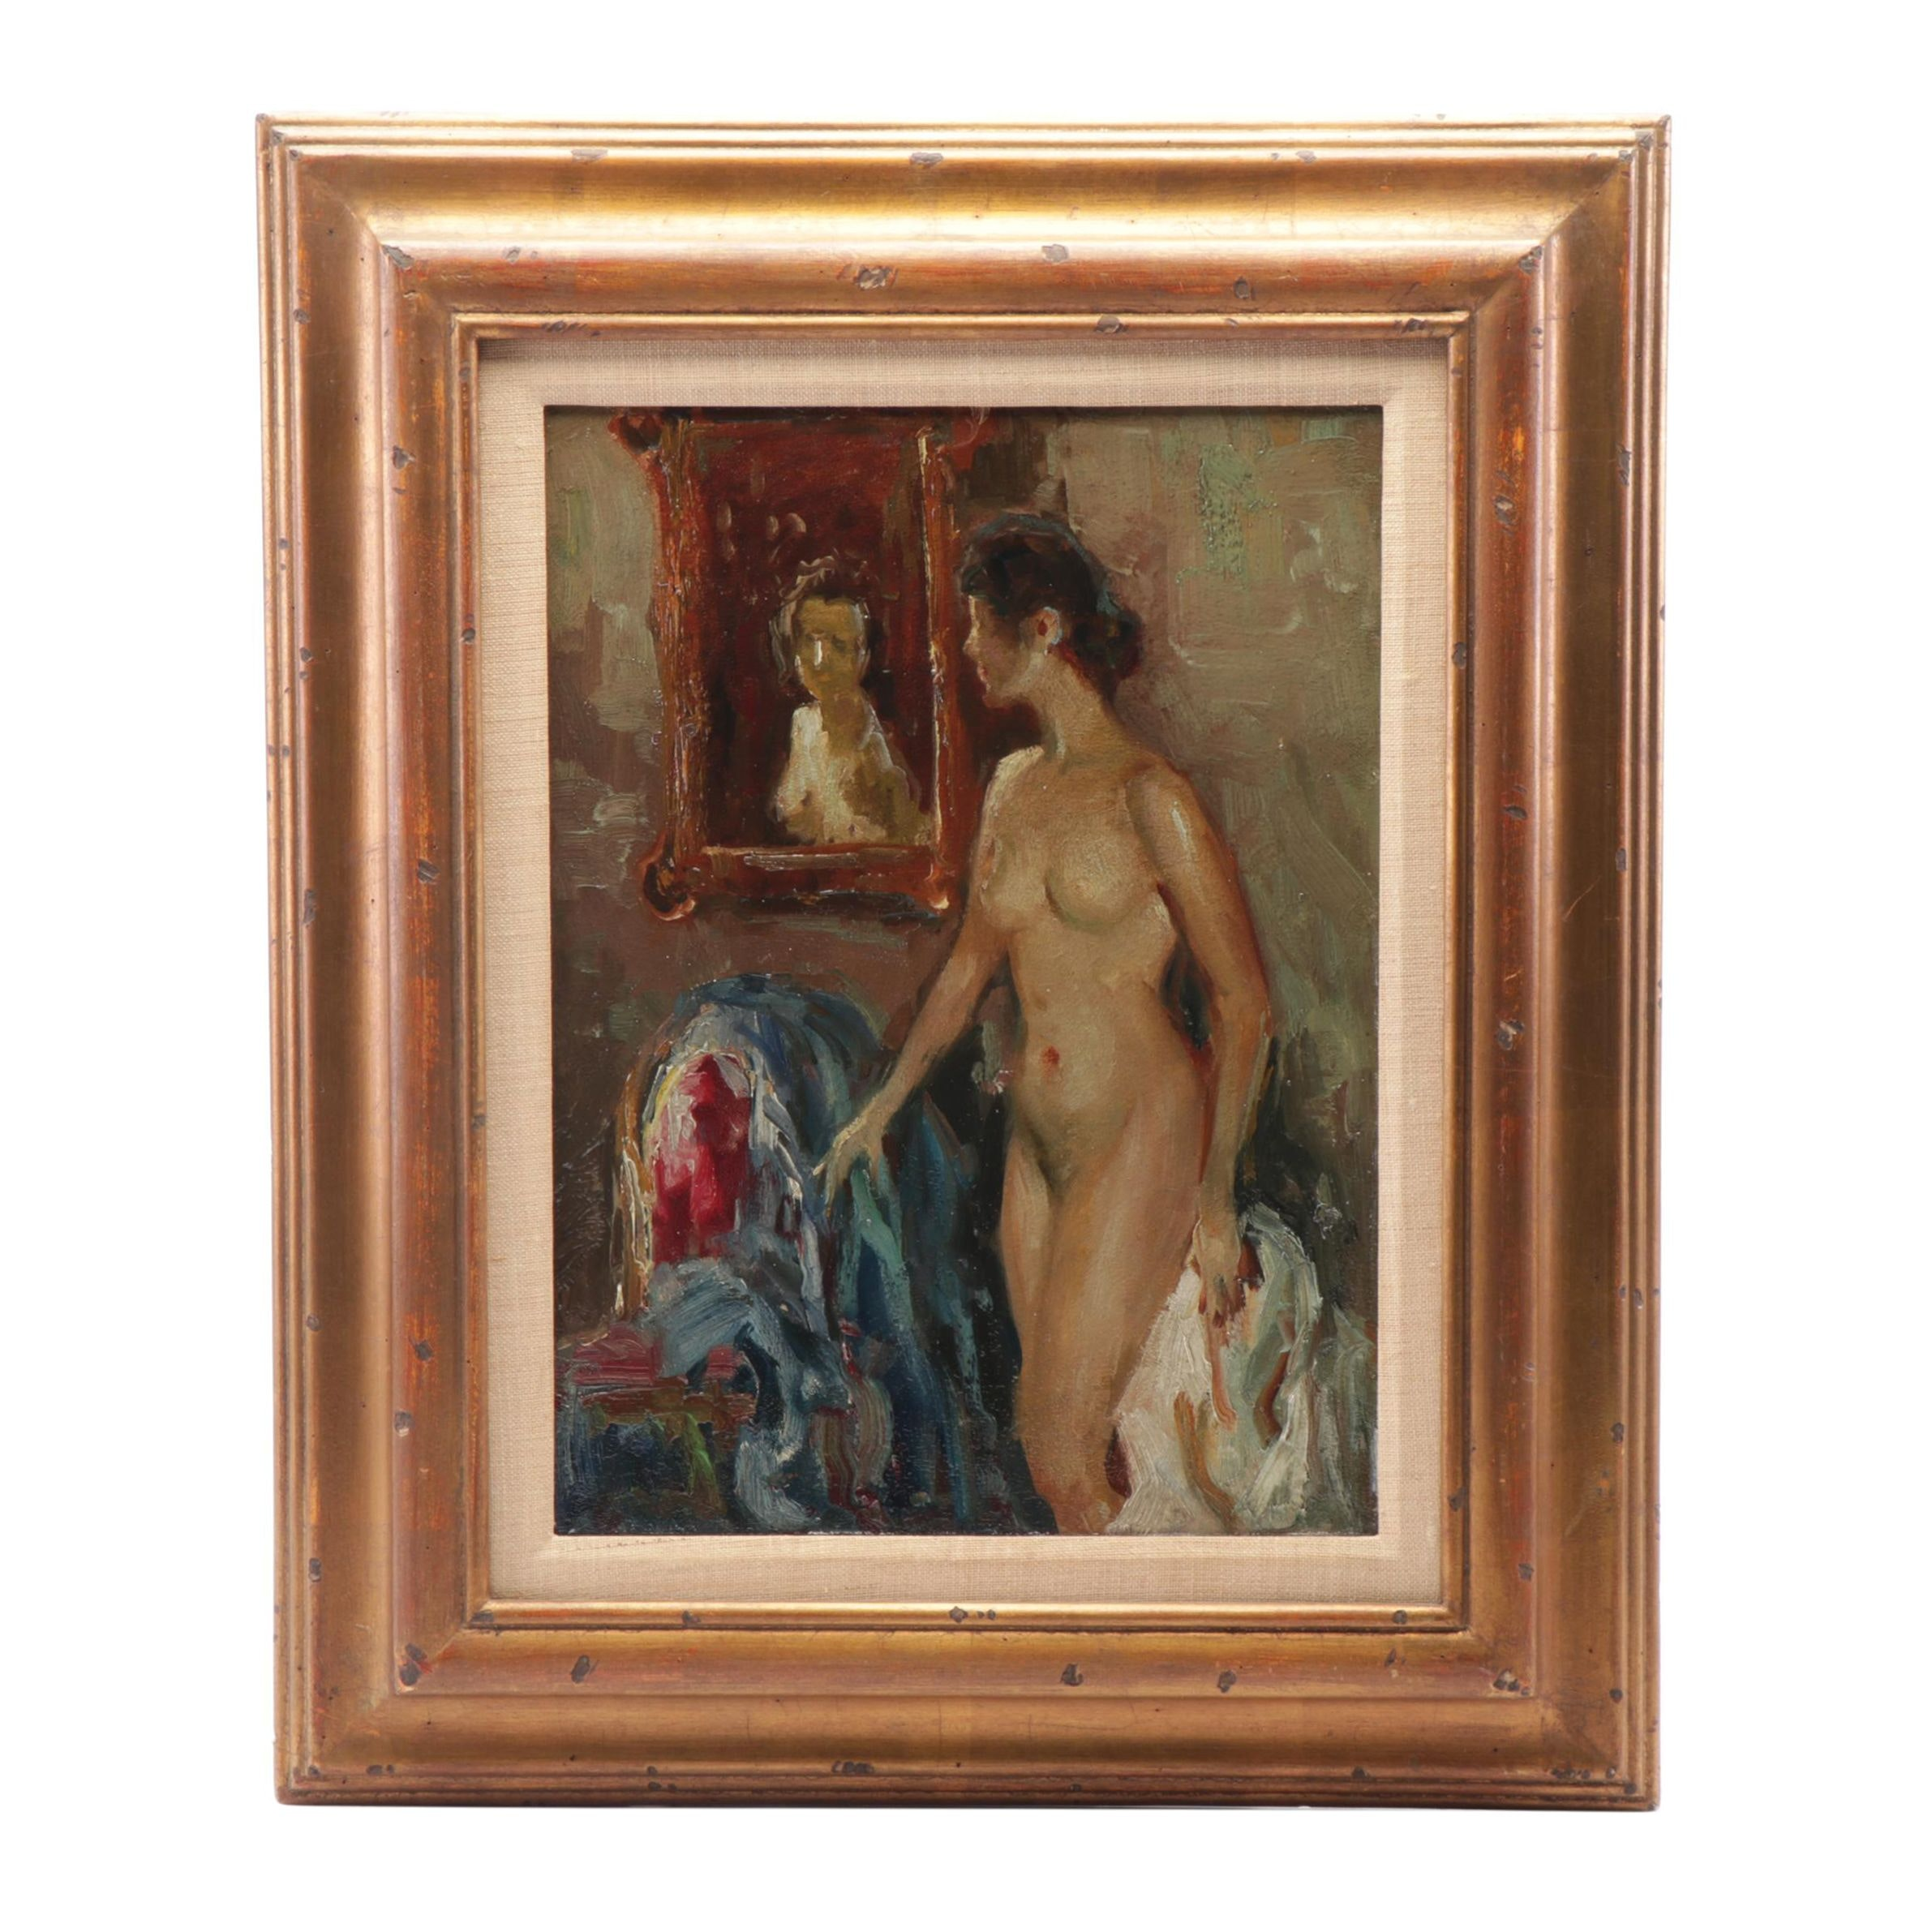 Portrait Oil Painting of Female Nude